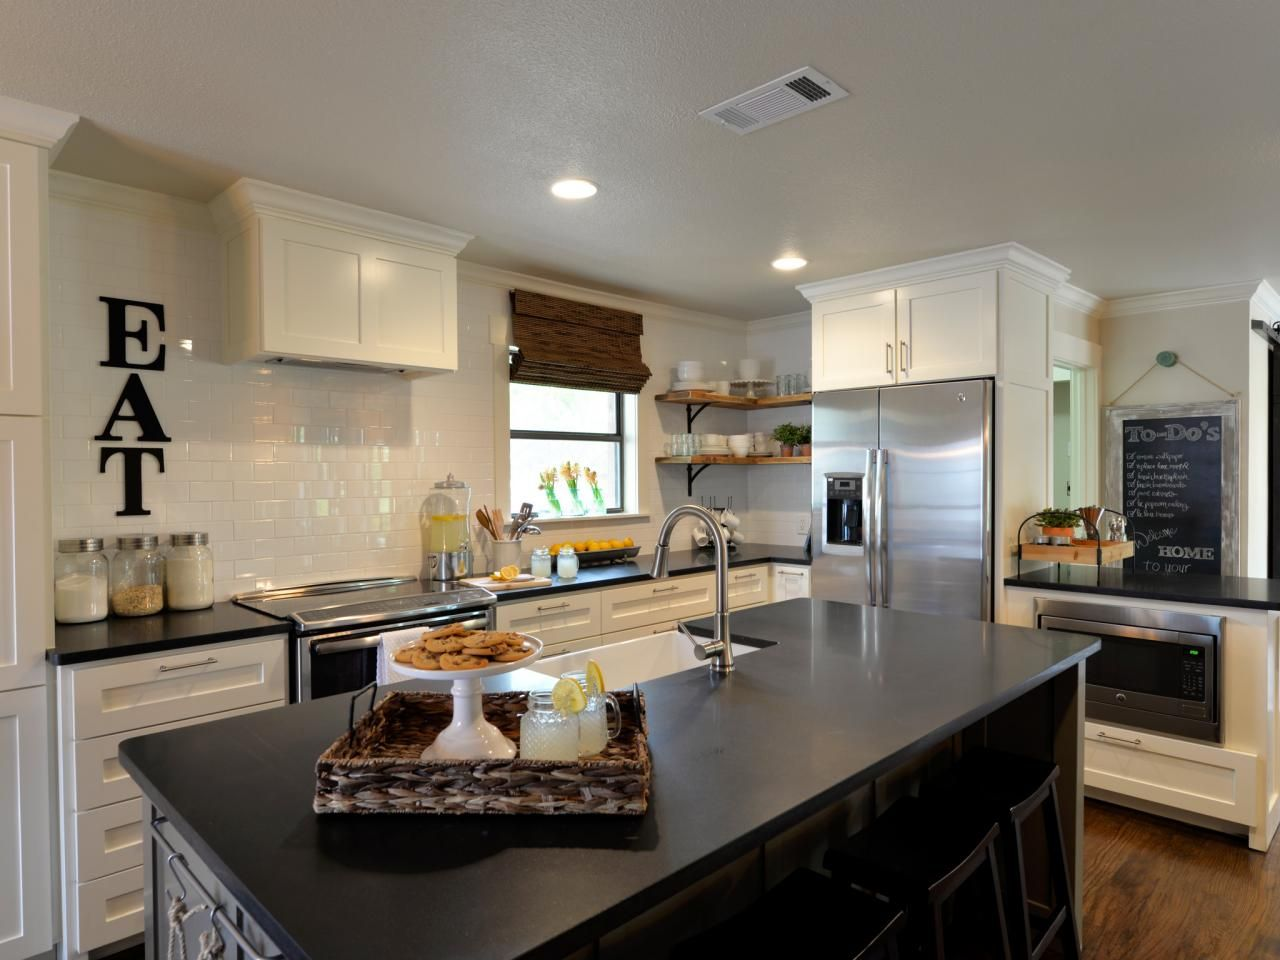 Kitchen Table Design Decorating Ideas Hgtv Pictures: Open Concept: Boxy To Beautiful Bungalow